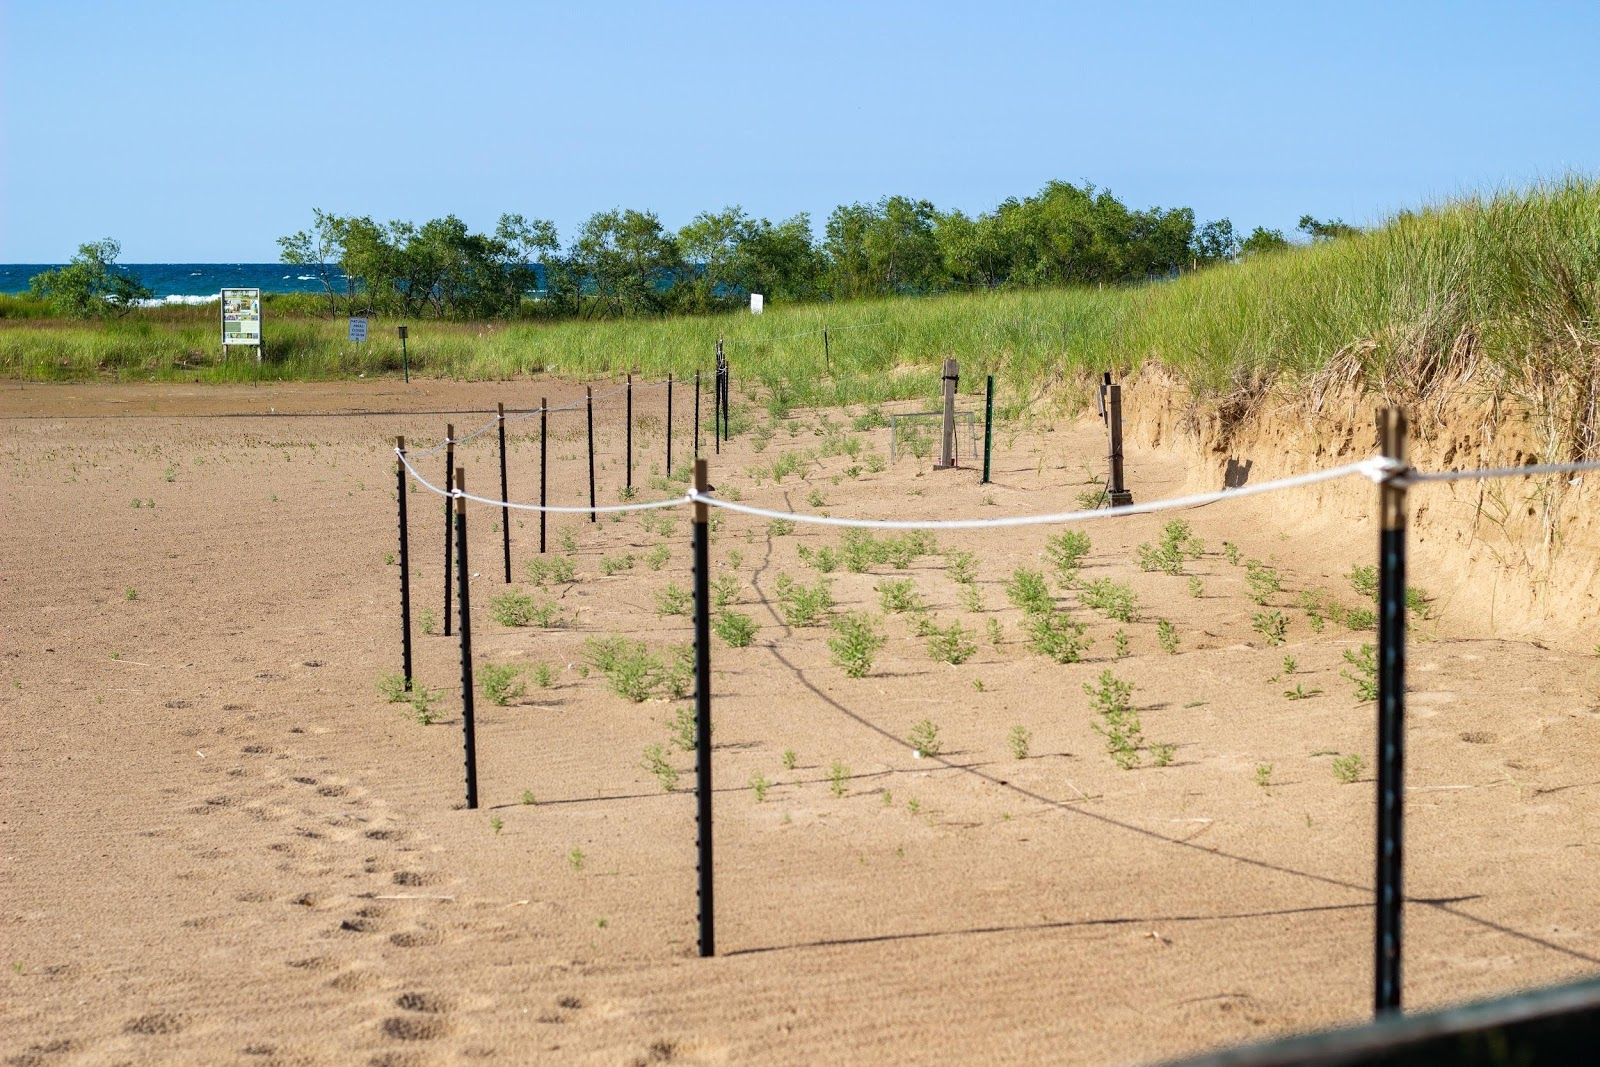 Temporary fencing was placed around the dunes to protect the nesting piping plovers.